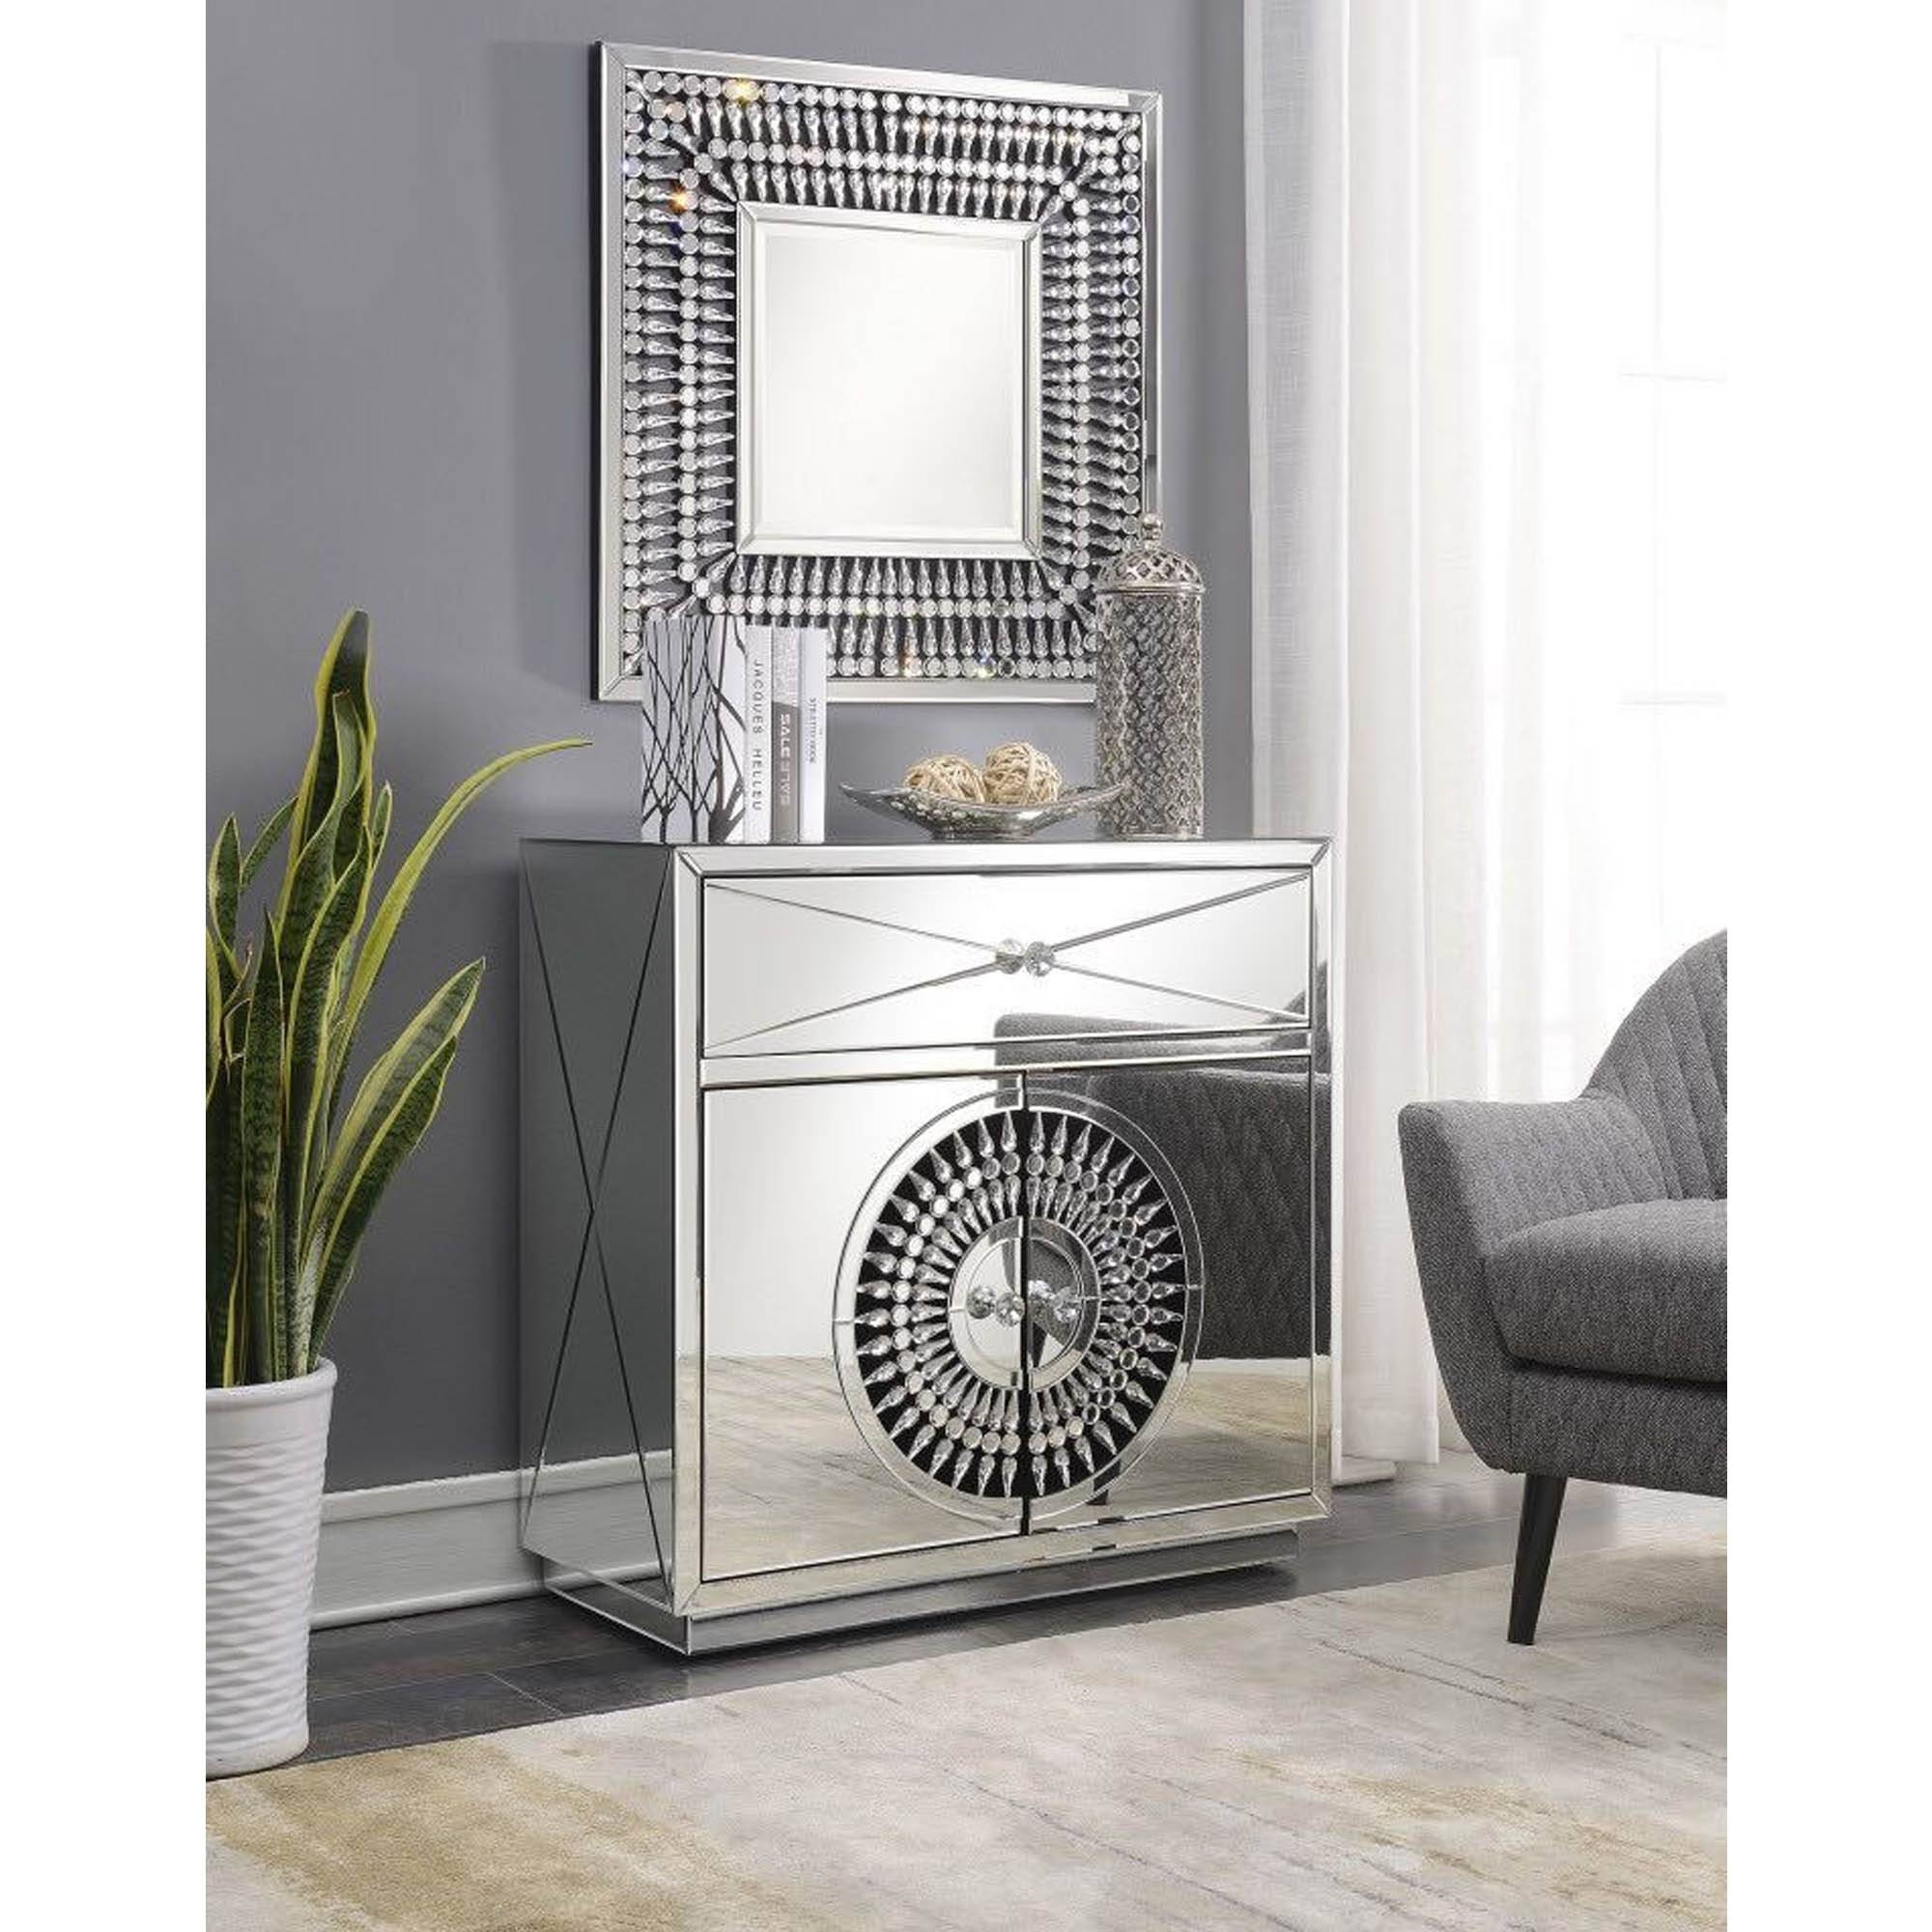 Crystal Mirrored Sideboard | Sideboard | Homesdirect365 Inside Latest Mirror Sideboards (View 13 of 15)